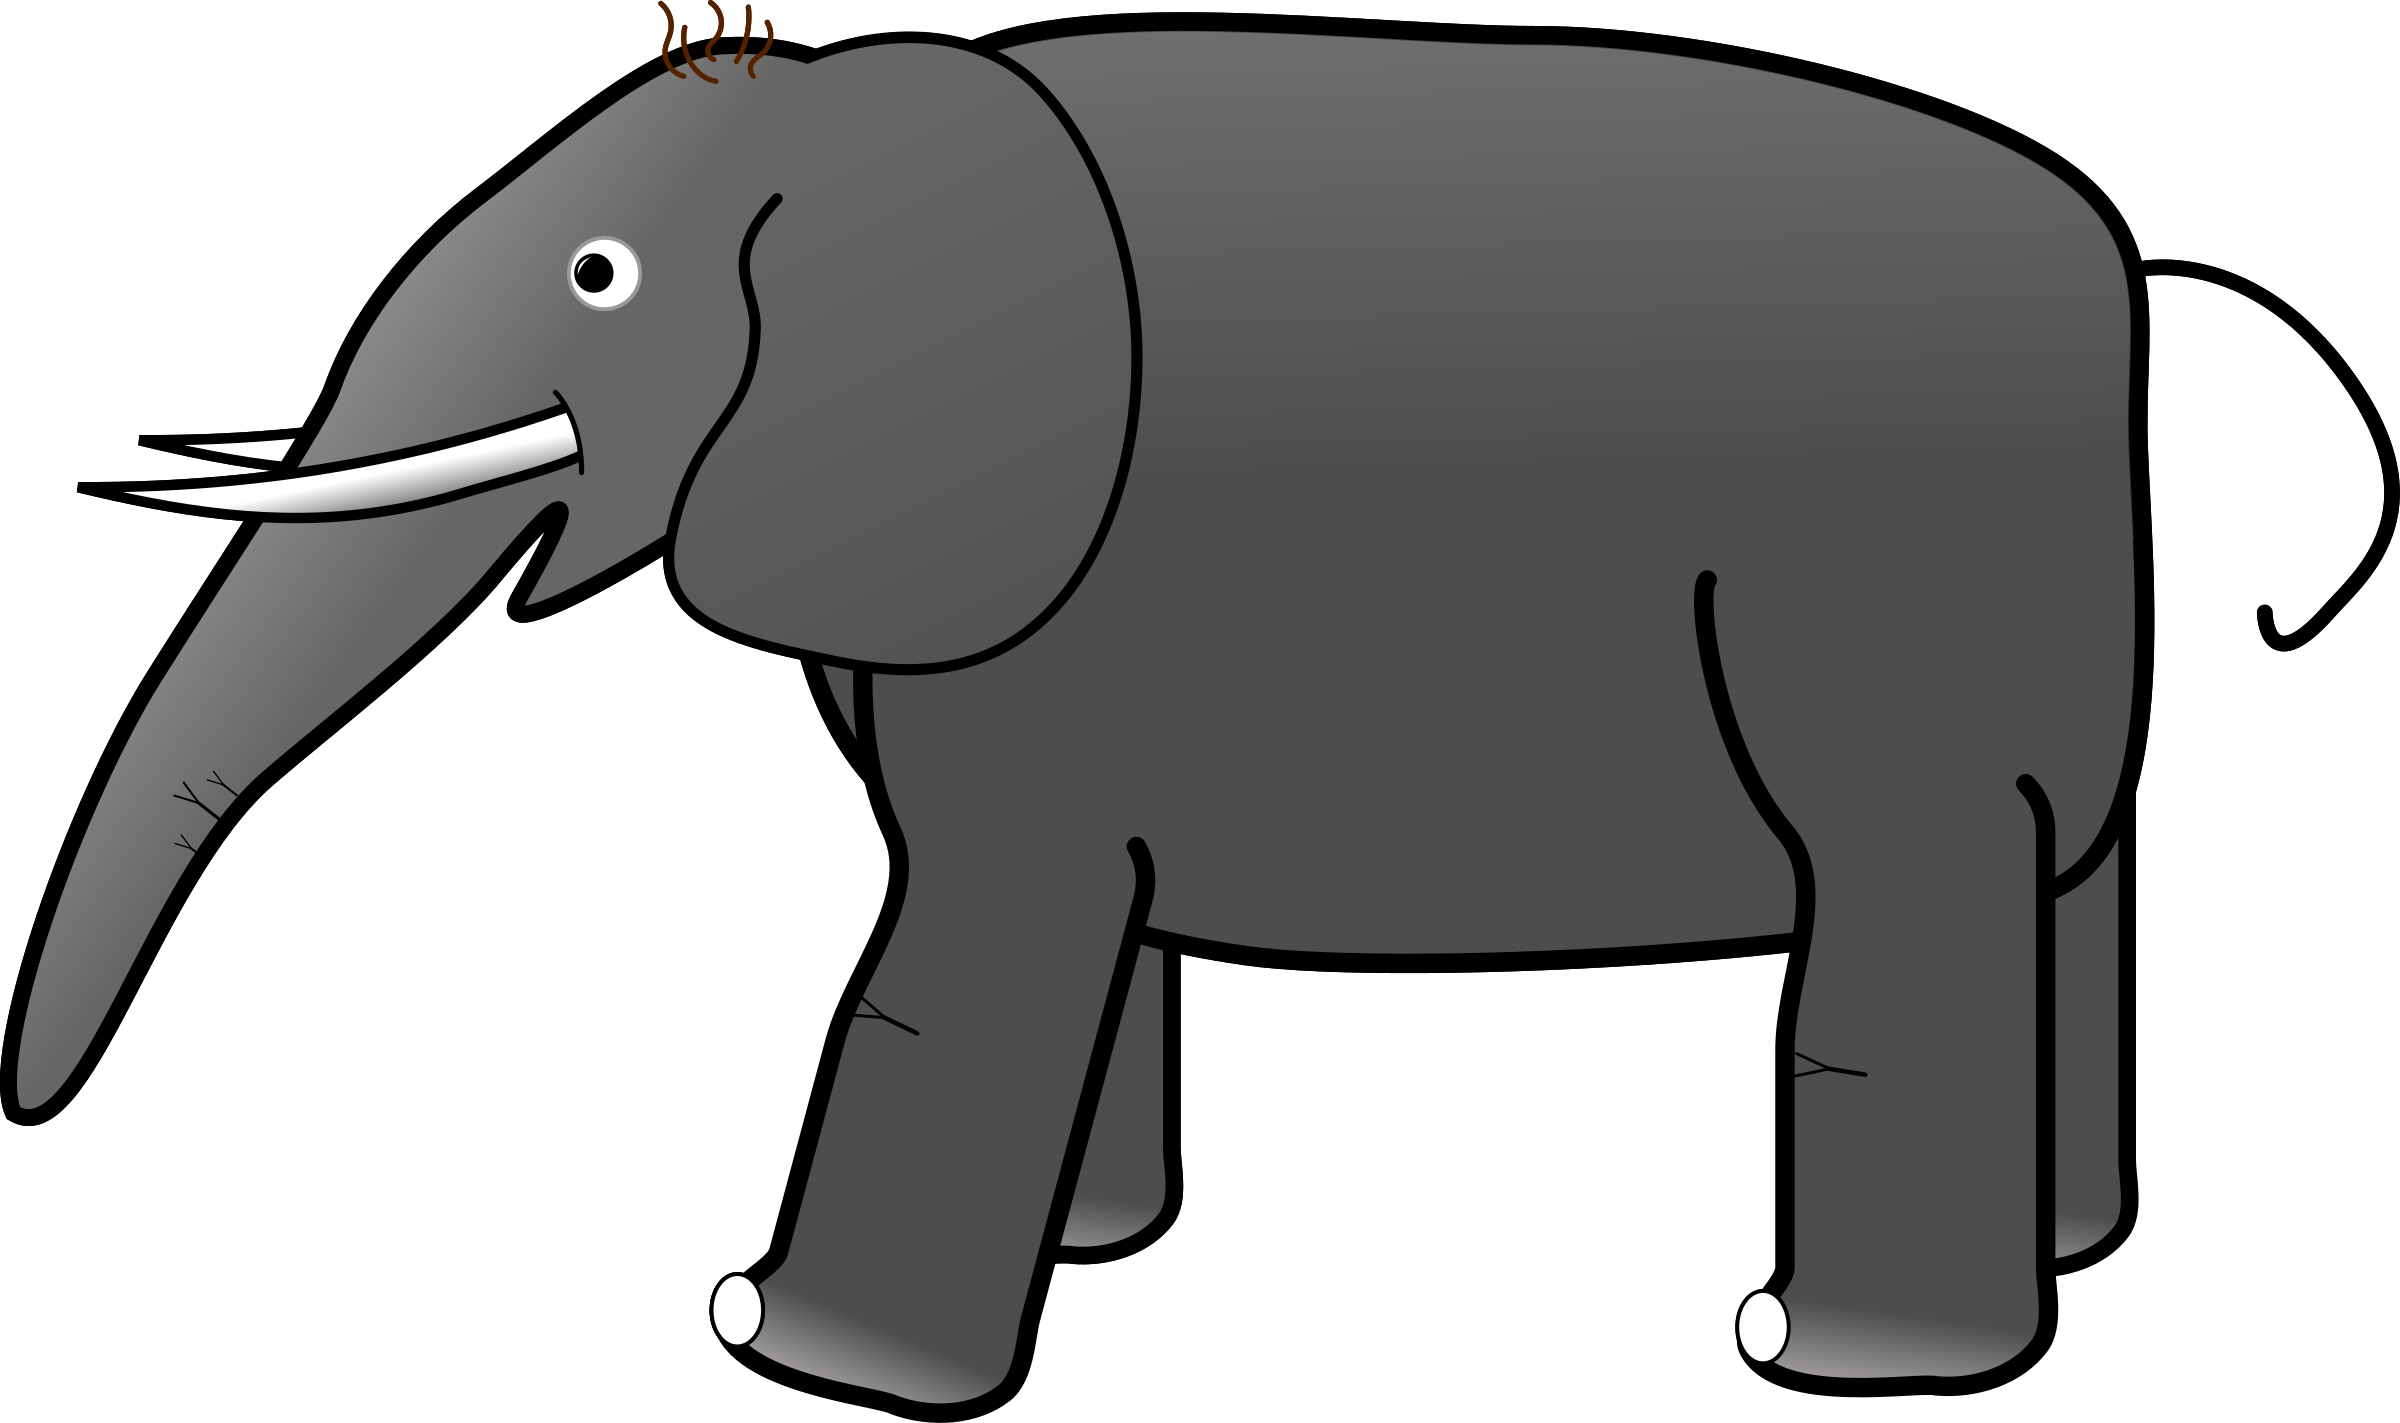 Elephants svg grey baby. Elephant icons png free